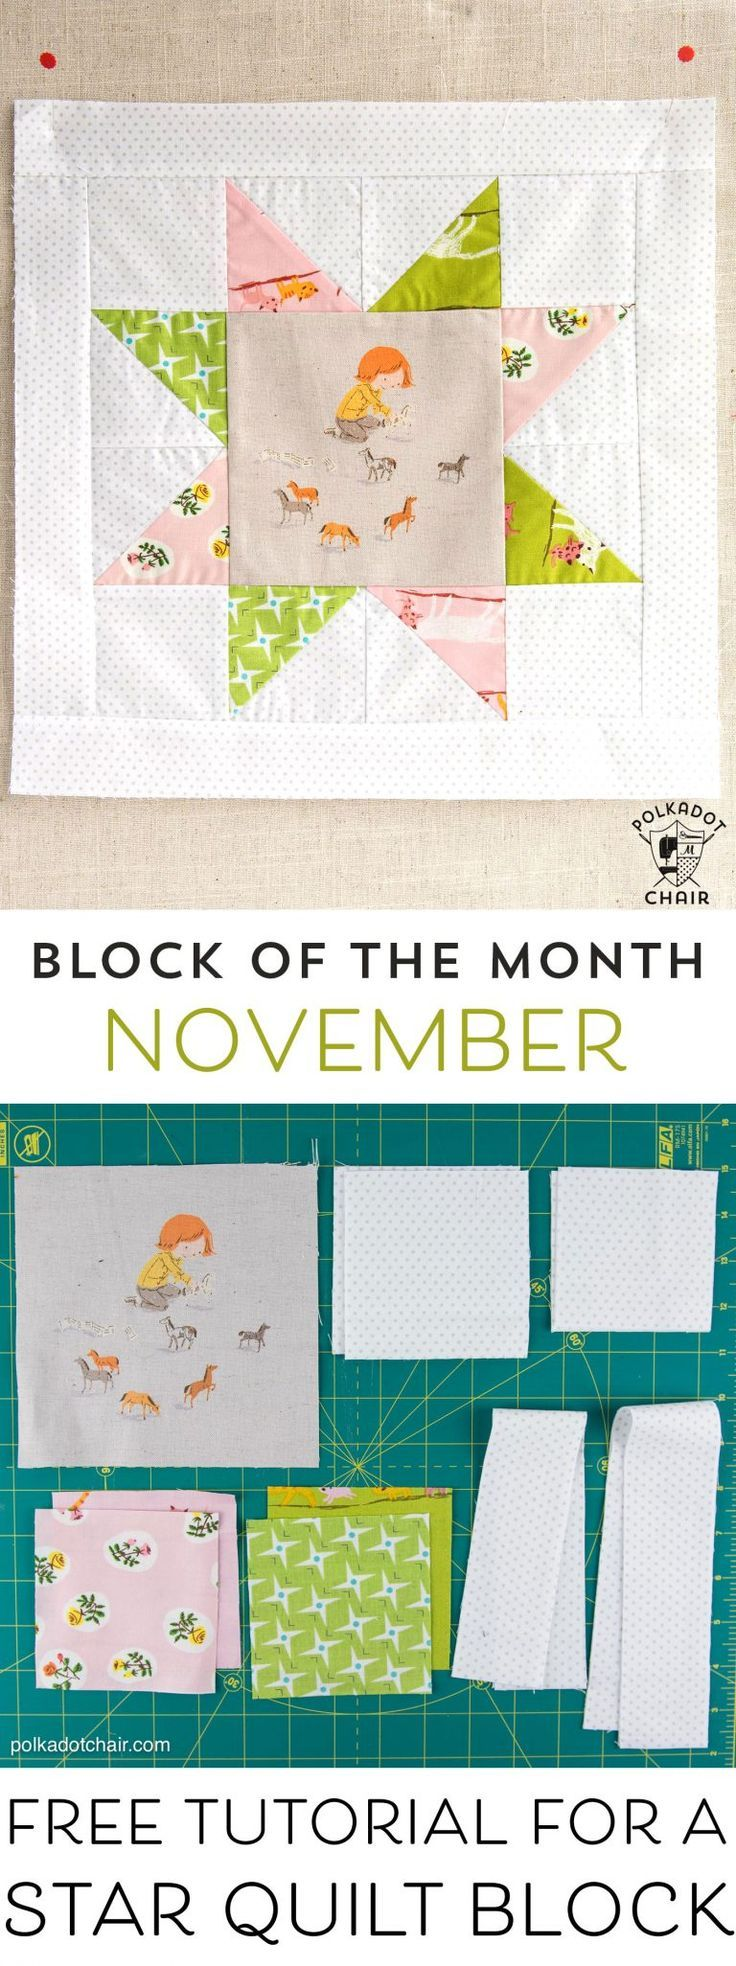 The November Quilt Block of the Month, a variation of a simple sawtooth star qui...